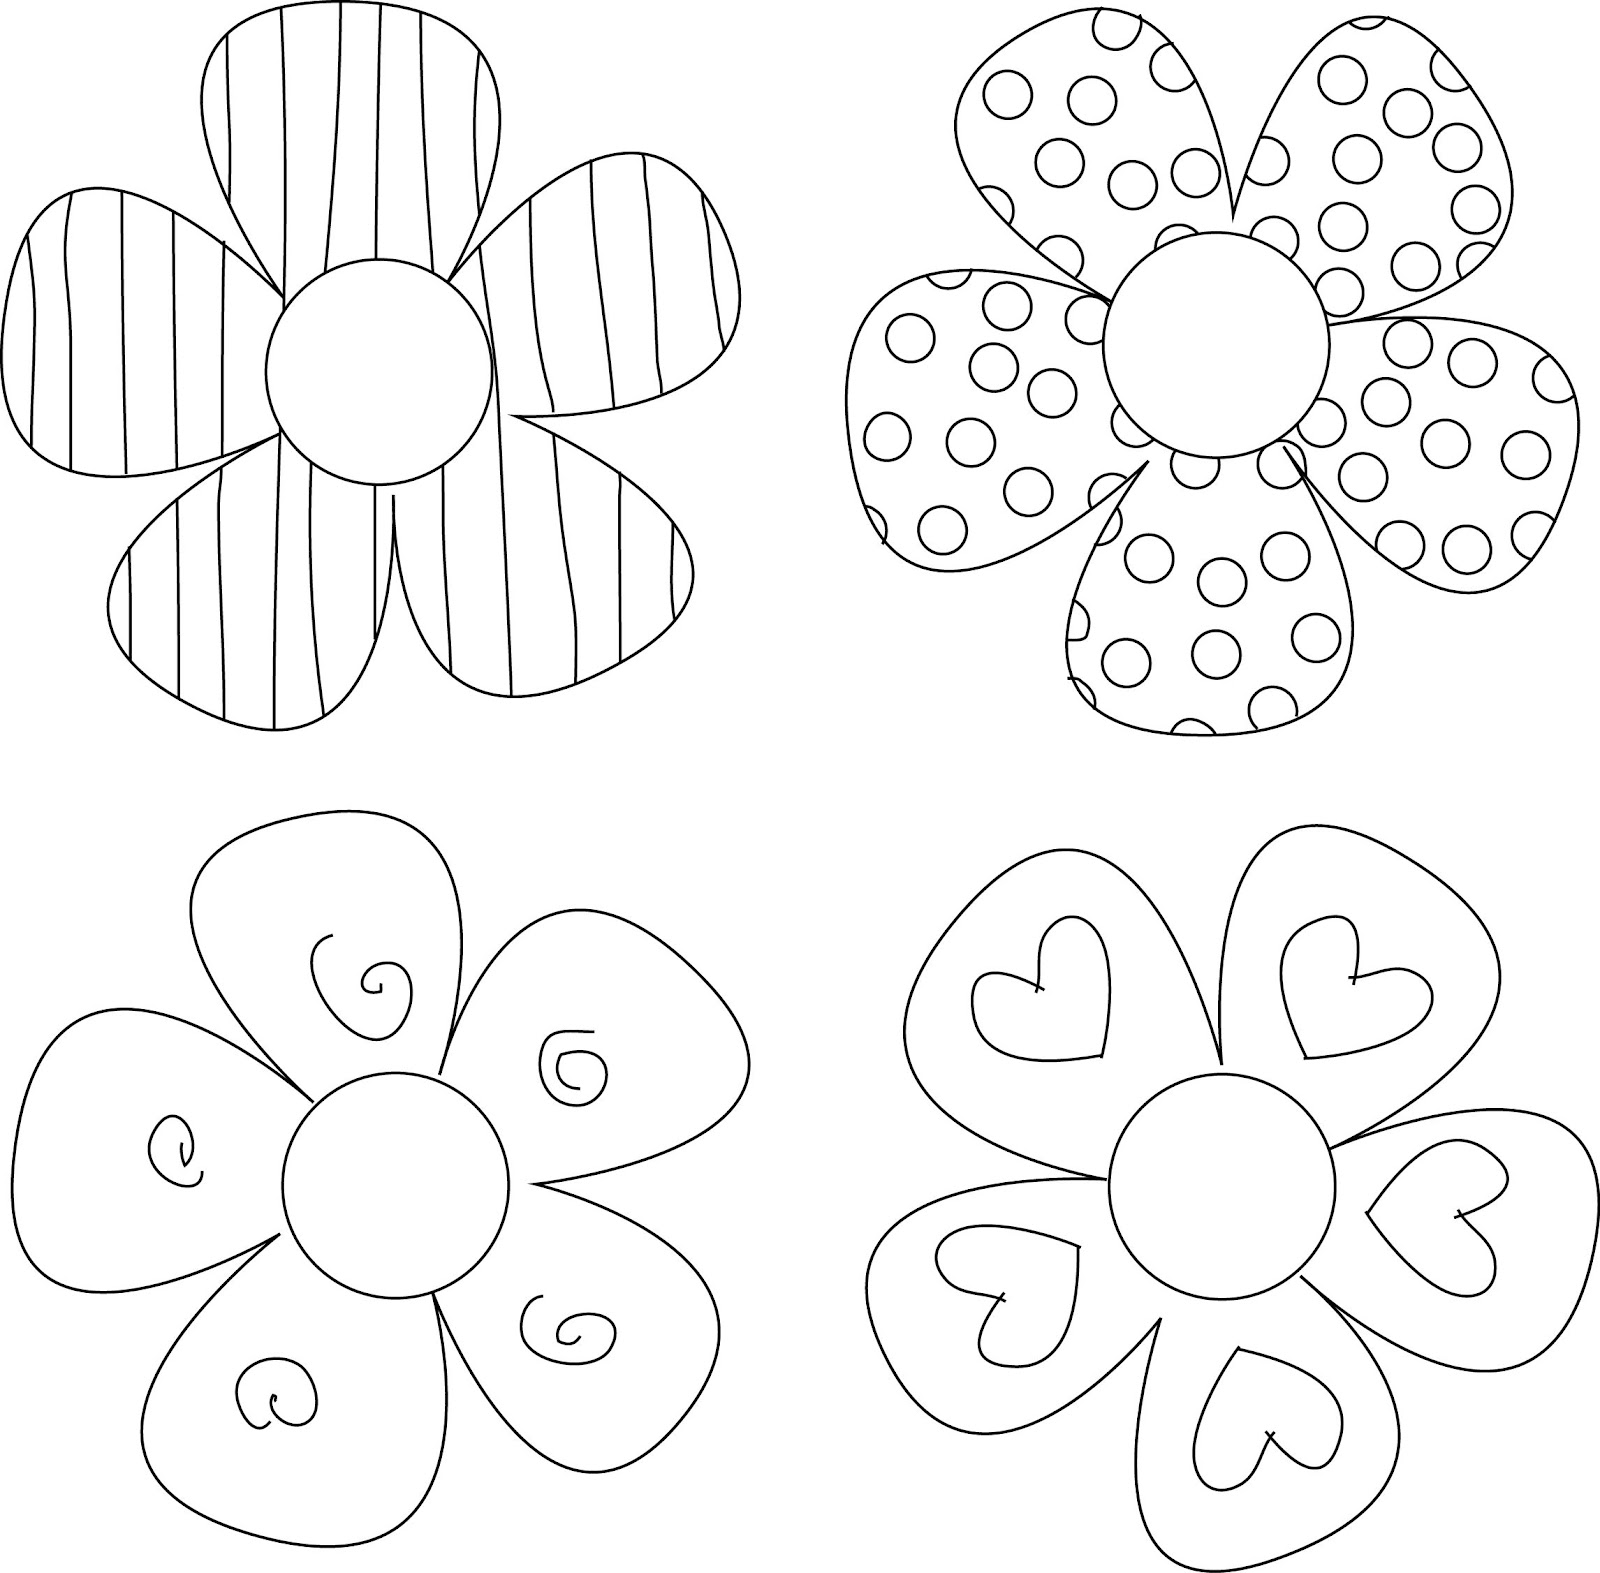 Exceptional image inside printable flower patterns